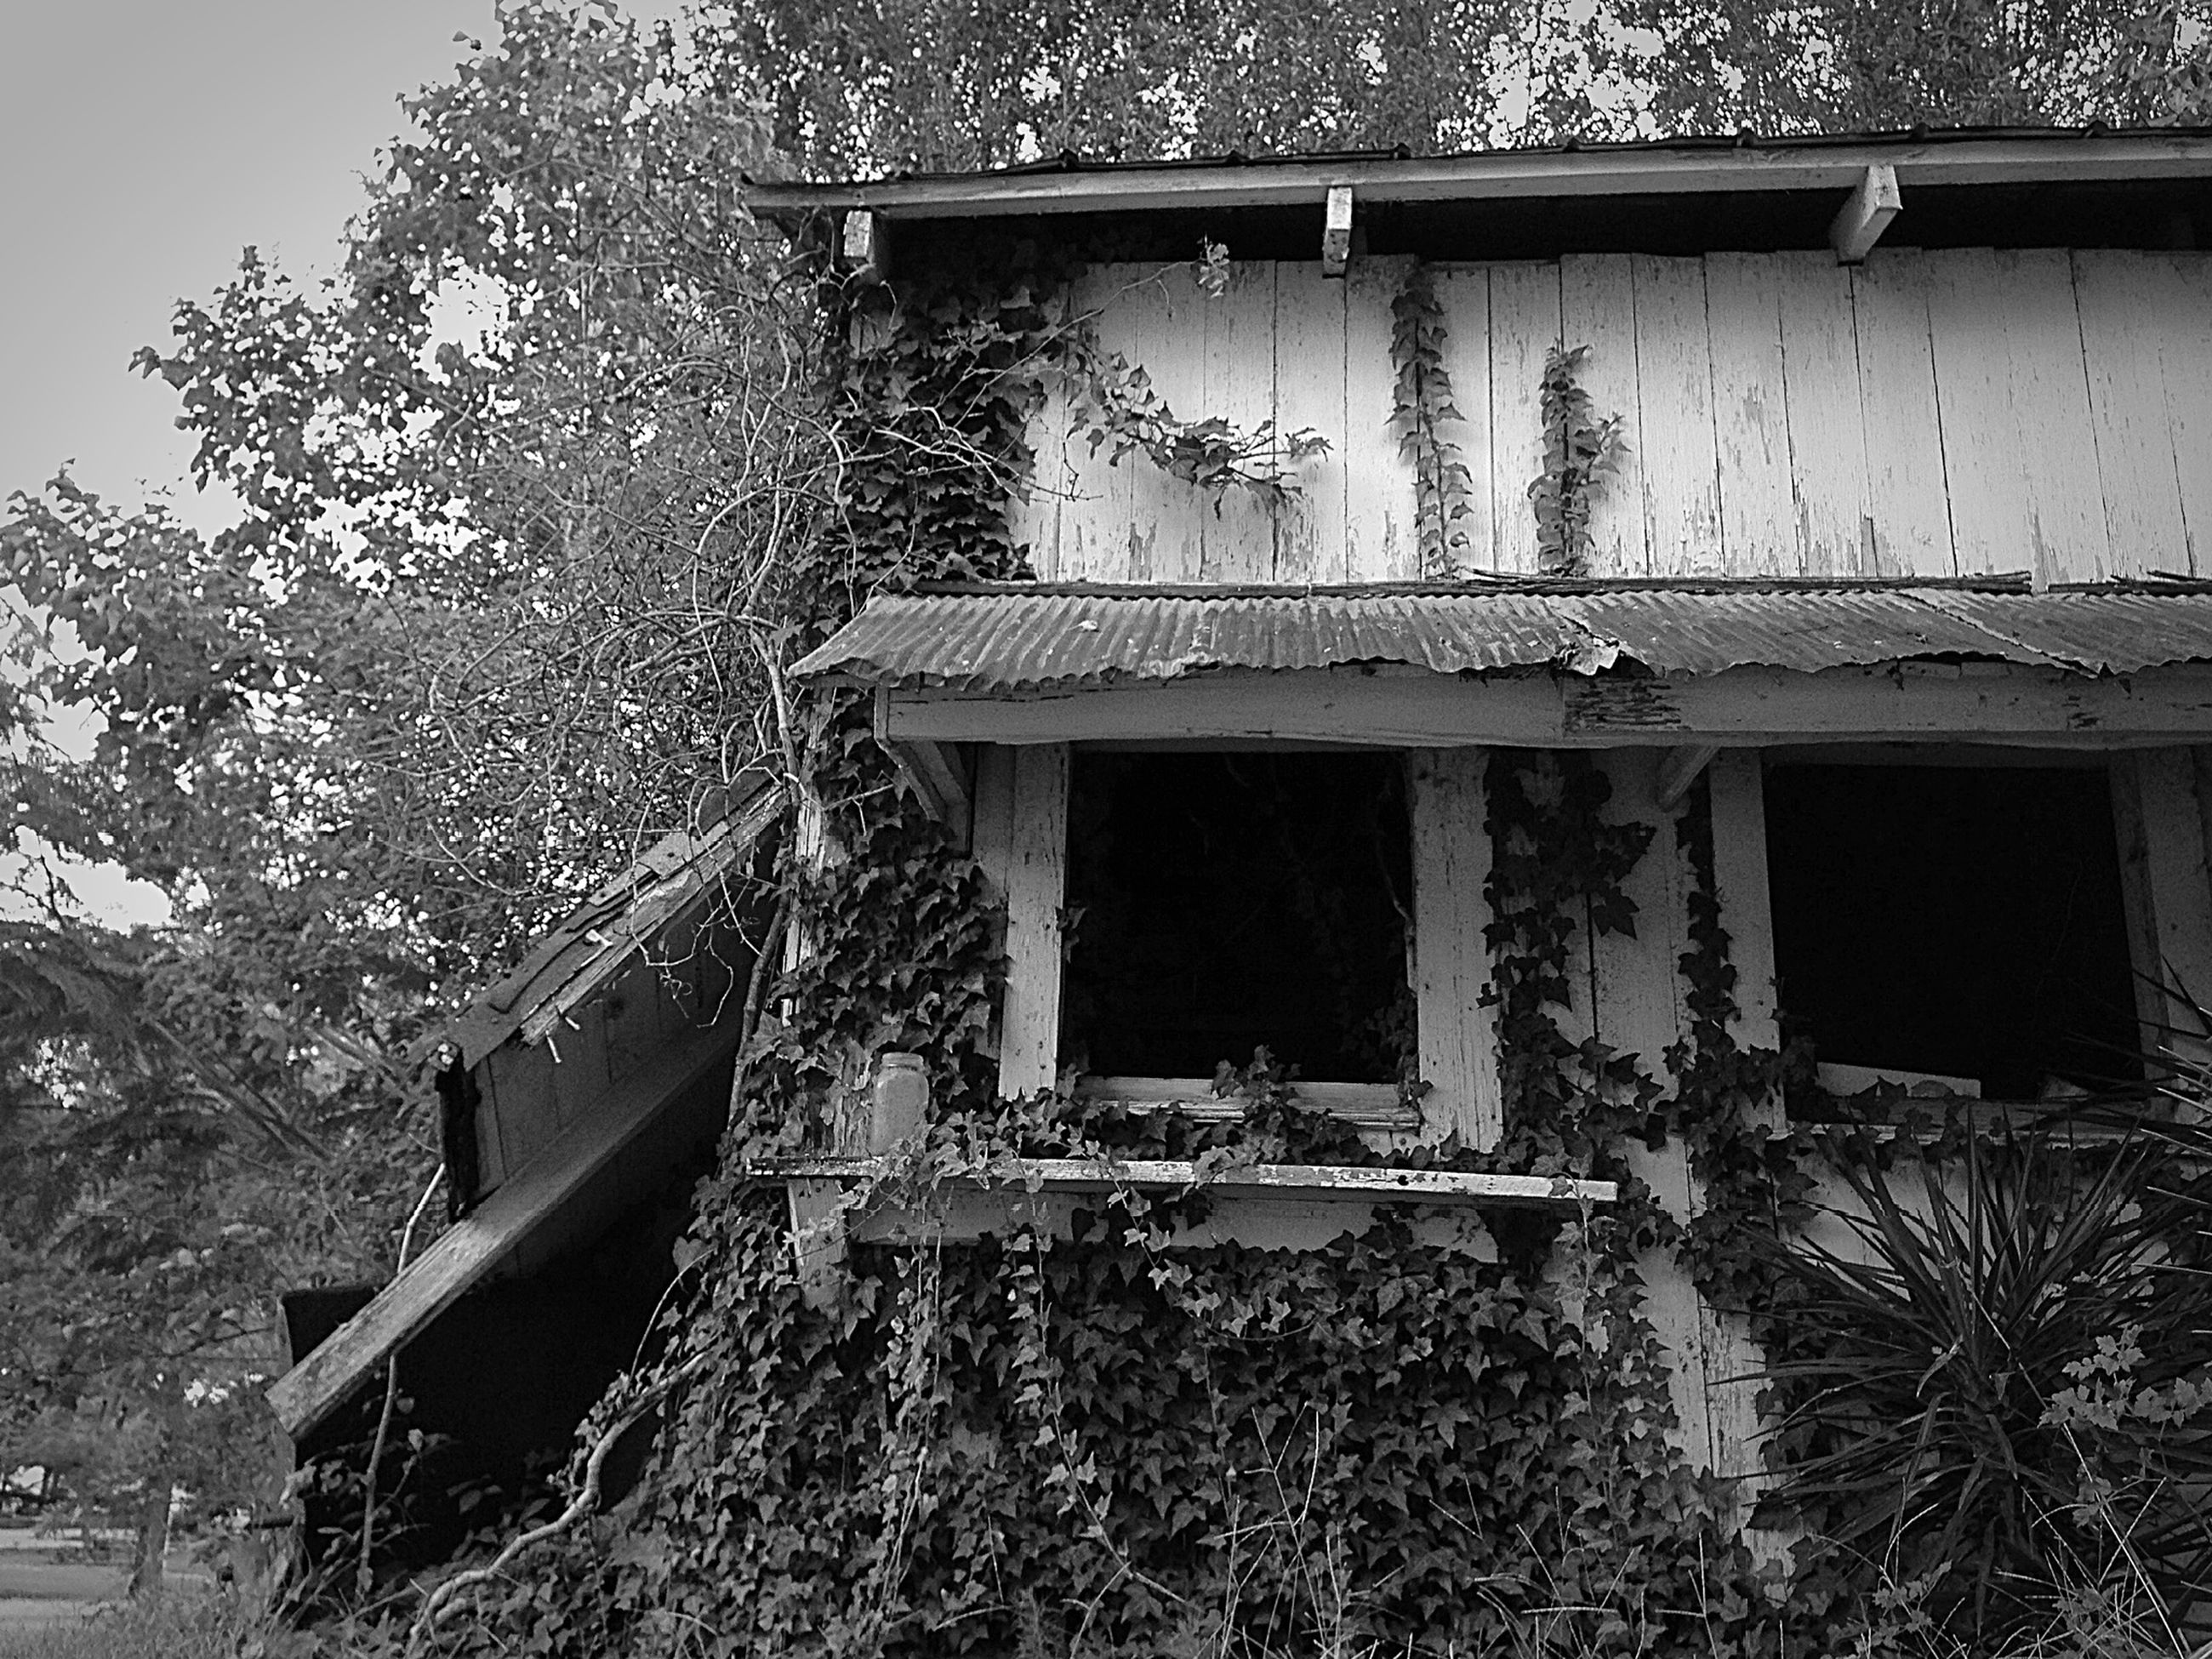 built structure, building exterior, architecture, house, window, tree, residential structure, abandoned, plant, growth, residential building, old, front or back yard, day, low angle view, damaged, outdoors, flower, obsolete, building